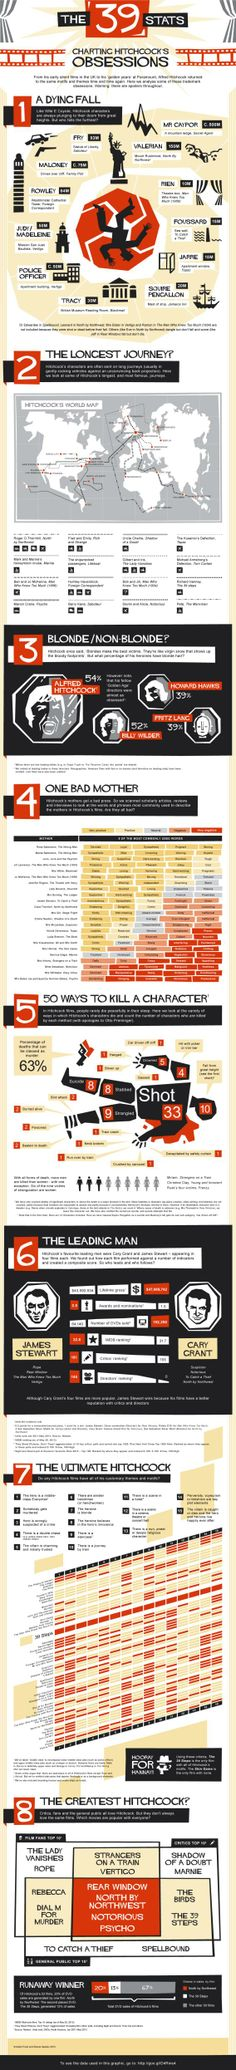 Love this graphic about Hitchcock films. So many great movies! Click for a zoomable version